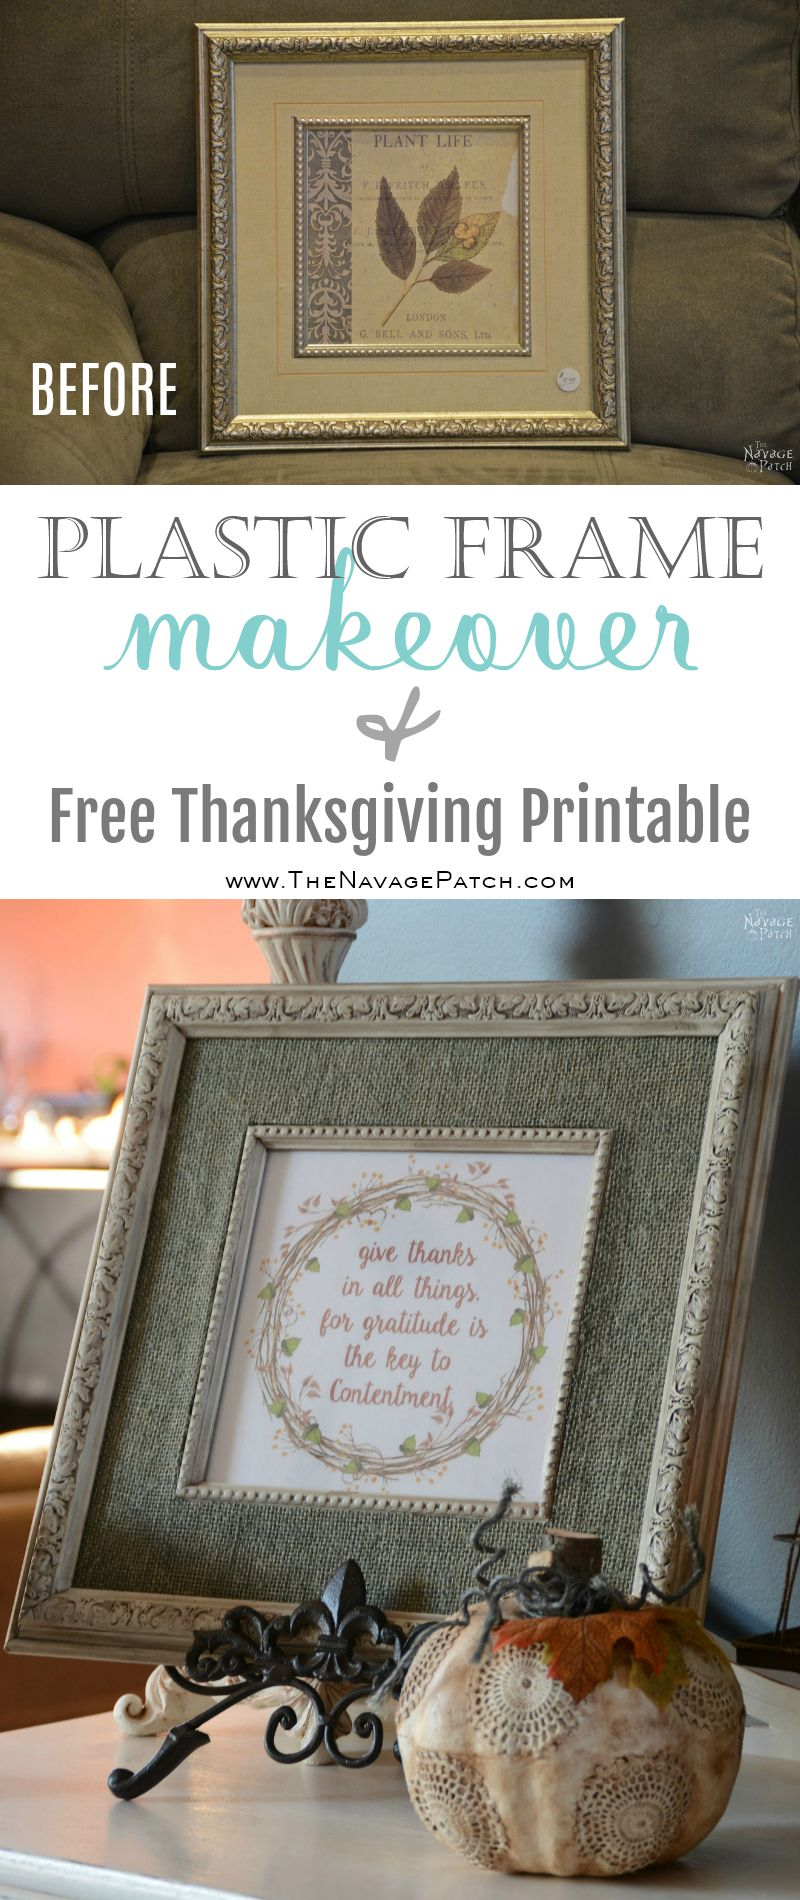 Plastic Frame Makeover {and Free Thanksgiving Printable} | DIY picture frame makeover | Painted and antiqued frame | Free Thanksgiving printable | DIY burlap picture frame mat | How to make a burlap picture frame mat | How to paint and distress plastic frames | Before & After | DIY home decor | TheNavagePatch.com